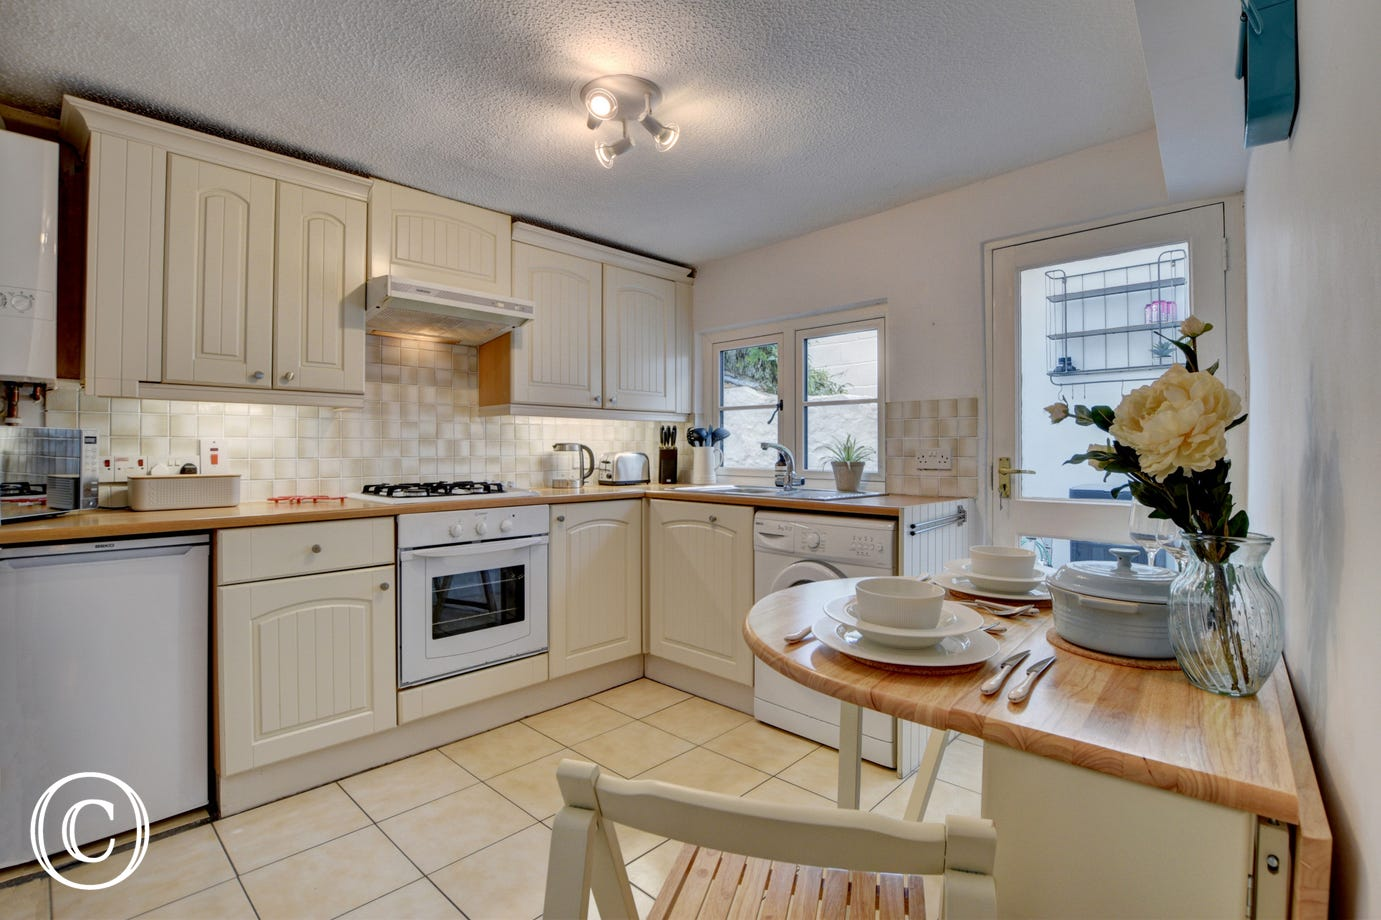 The lovely cottage style kitchen and dining room